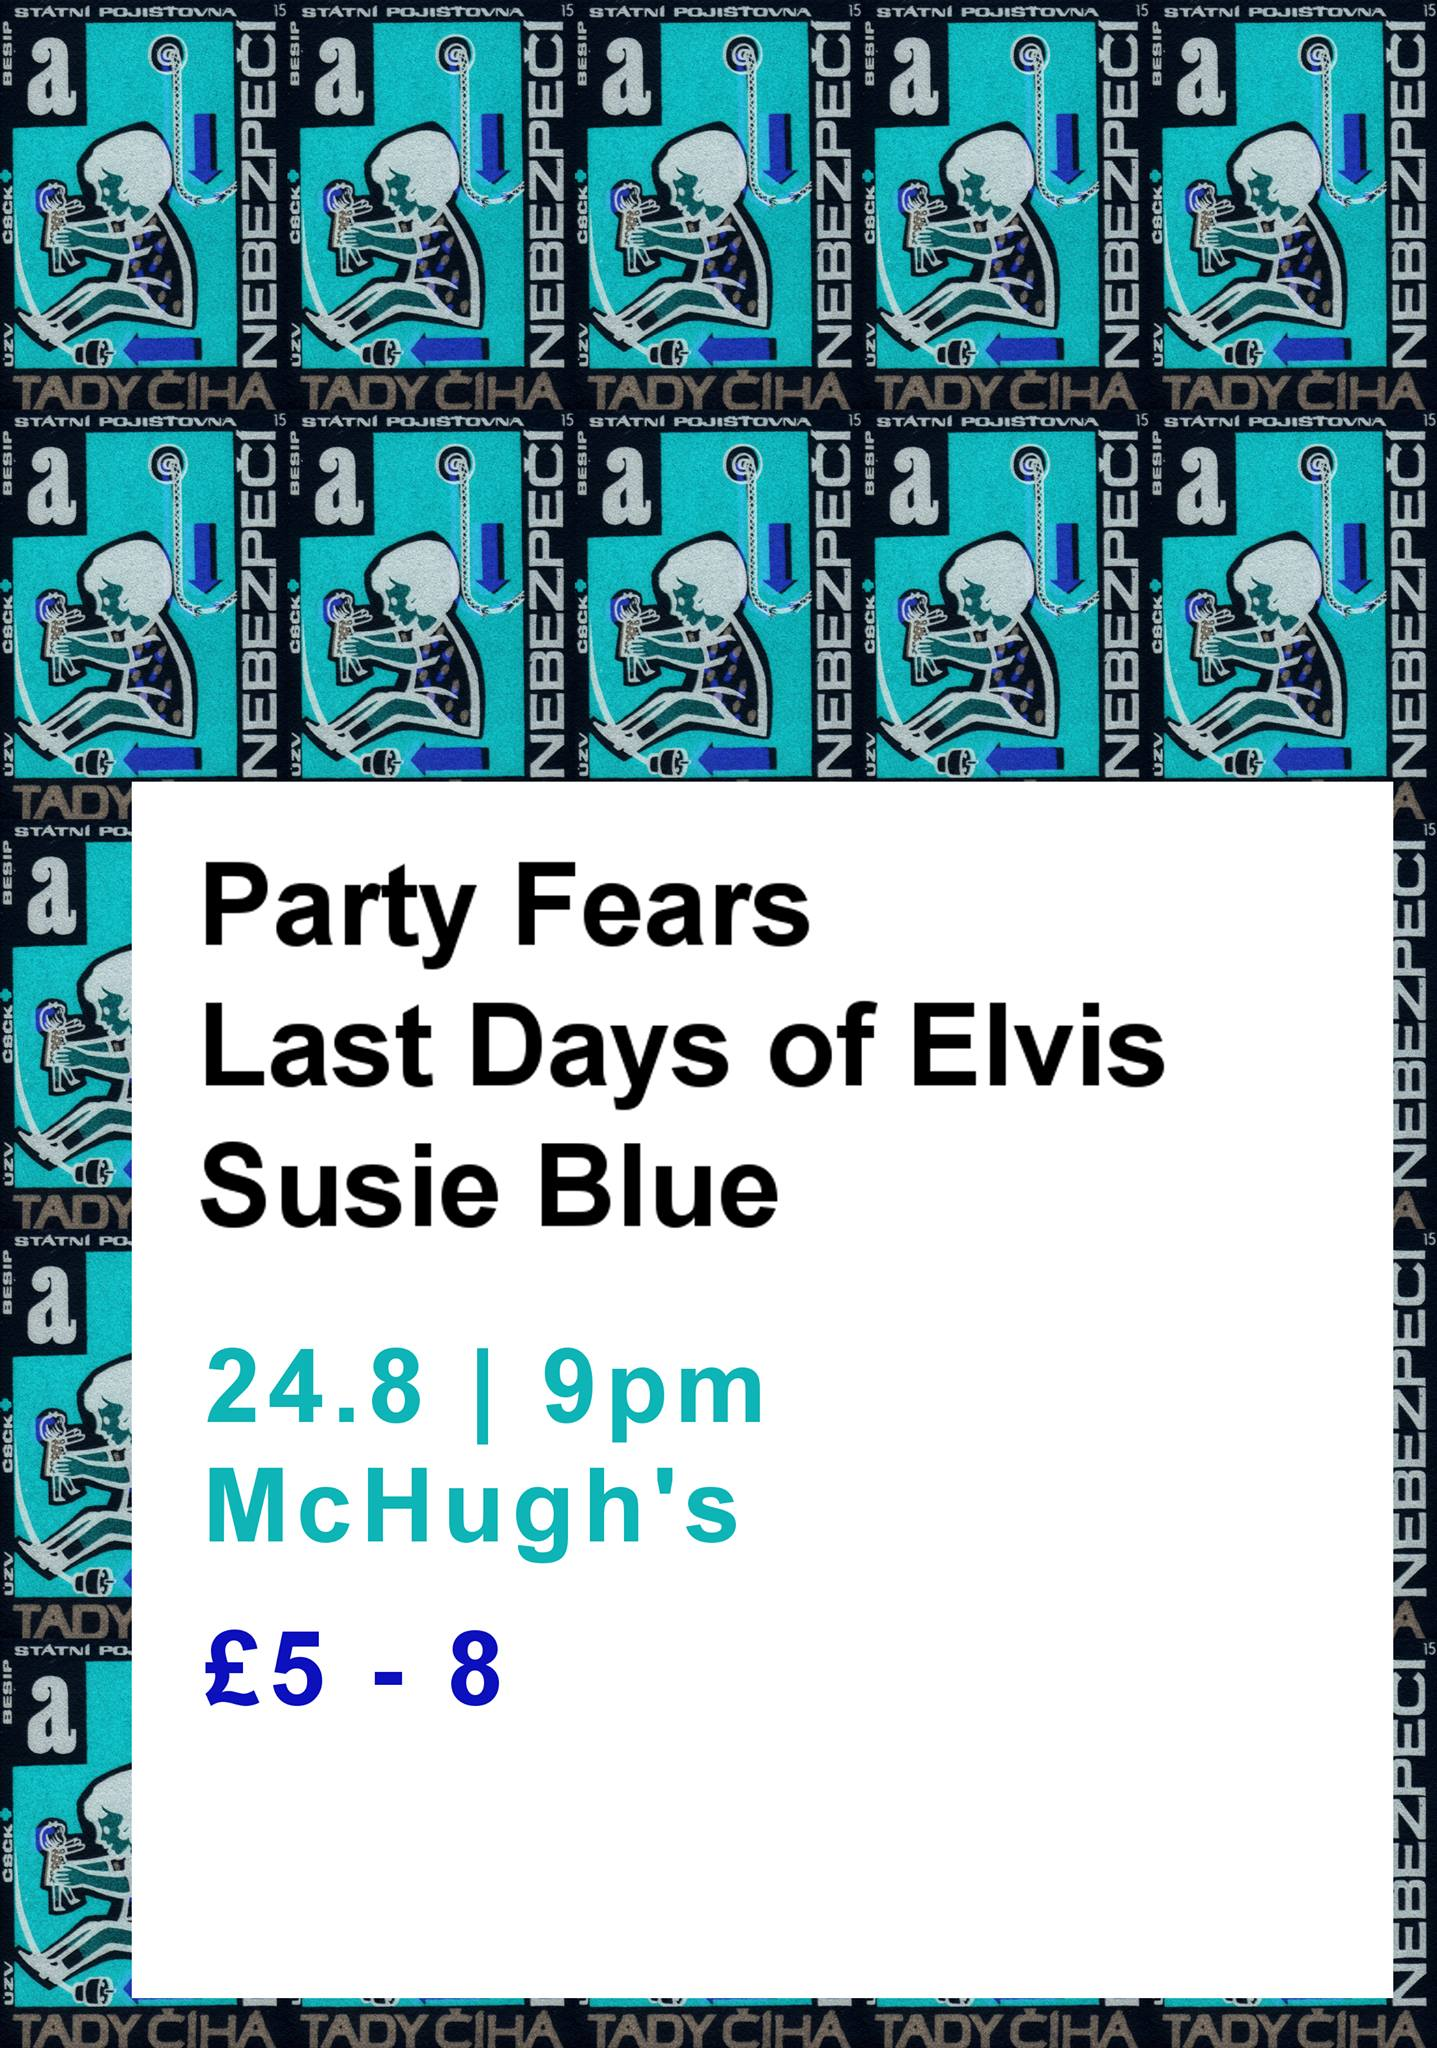 Chordblossom Presents: Party Fears, Last Days Of Elvis & Susie Blue